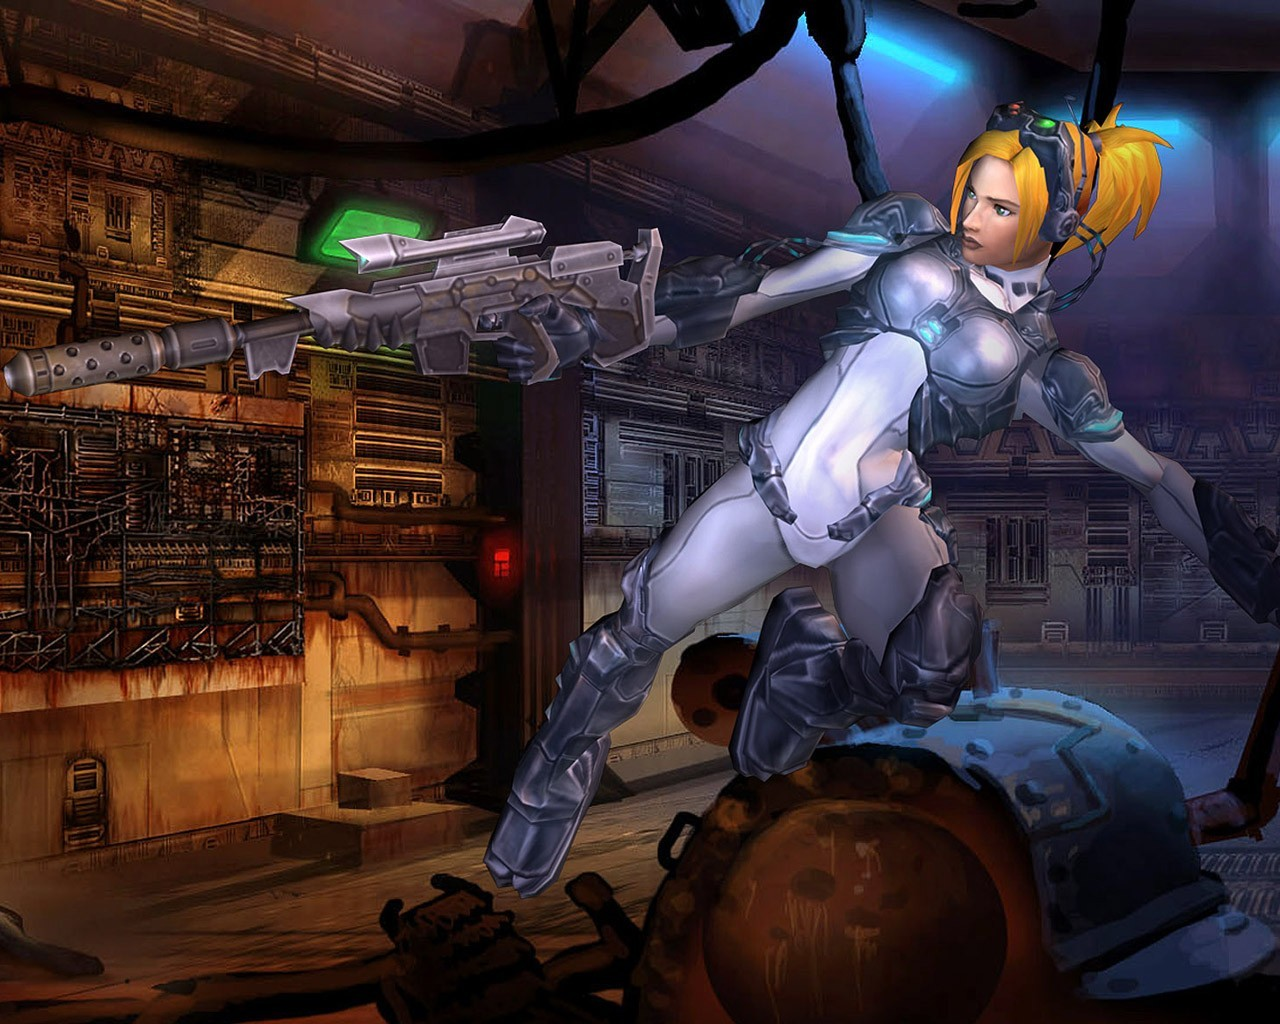 woman video games starcraft HD Wallpaper